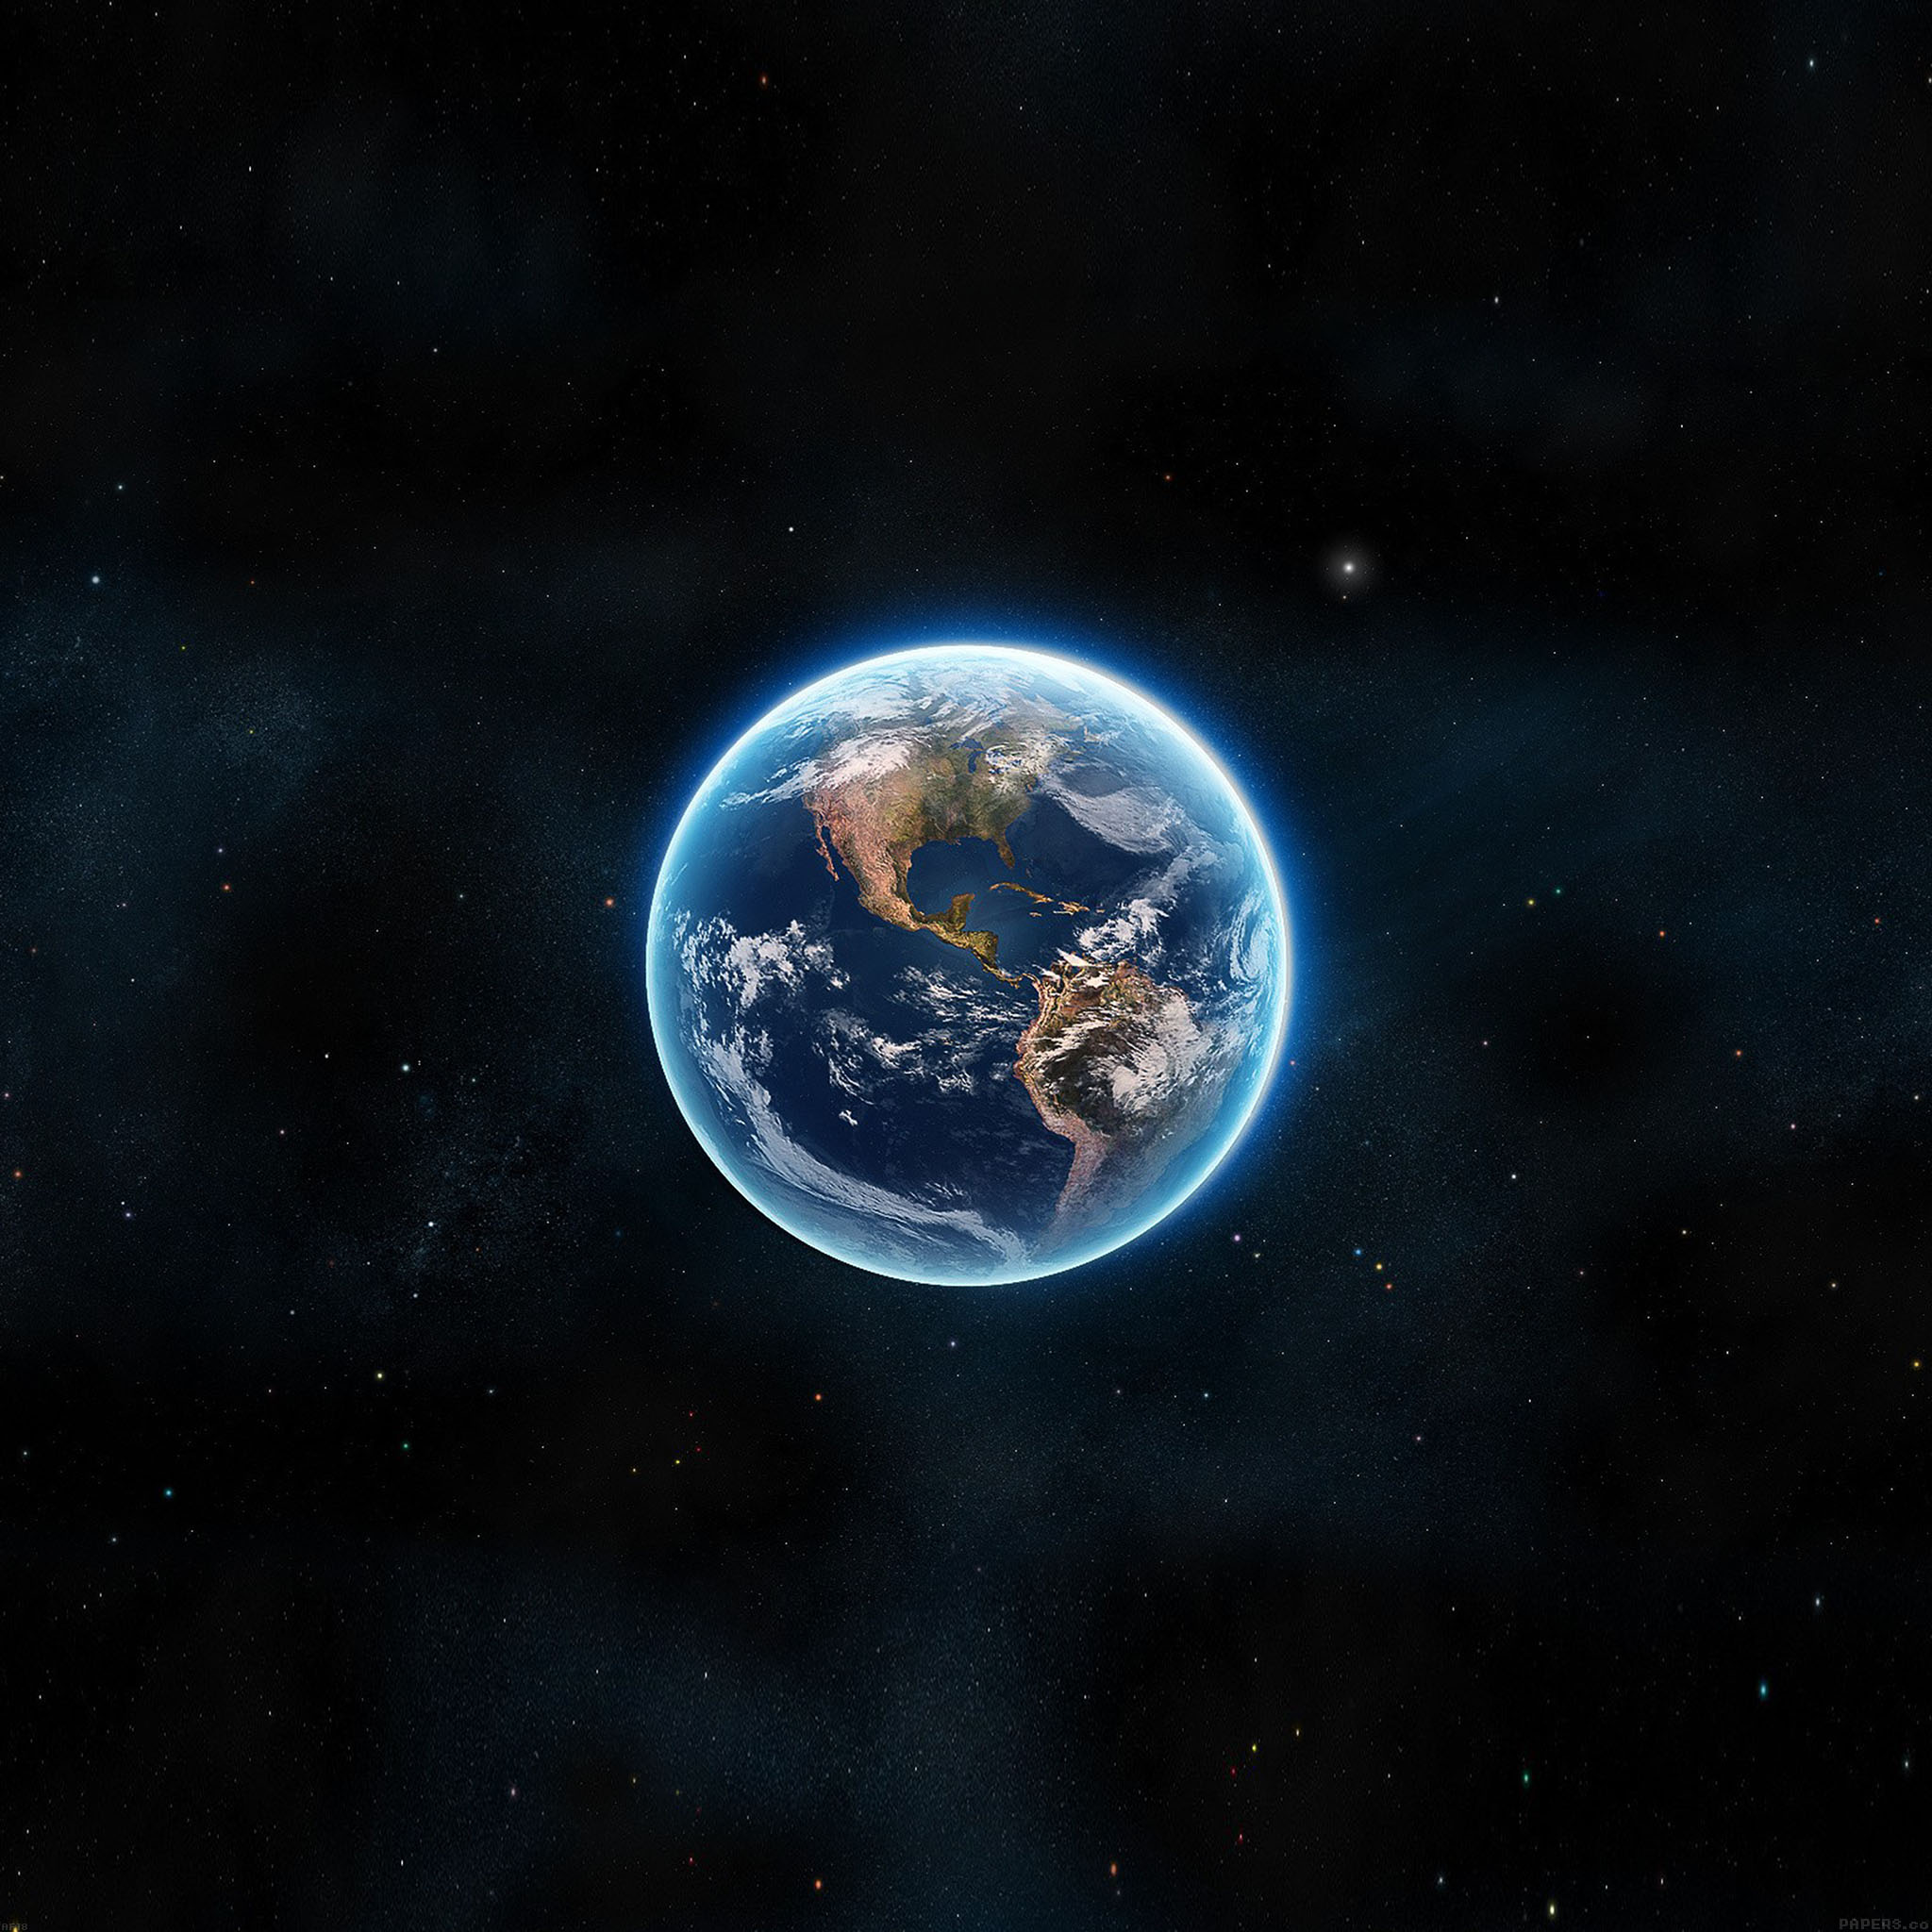 Af18 earth view from space satellite illust art wallpaper ipad retina gumiabroncs Image collections